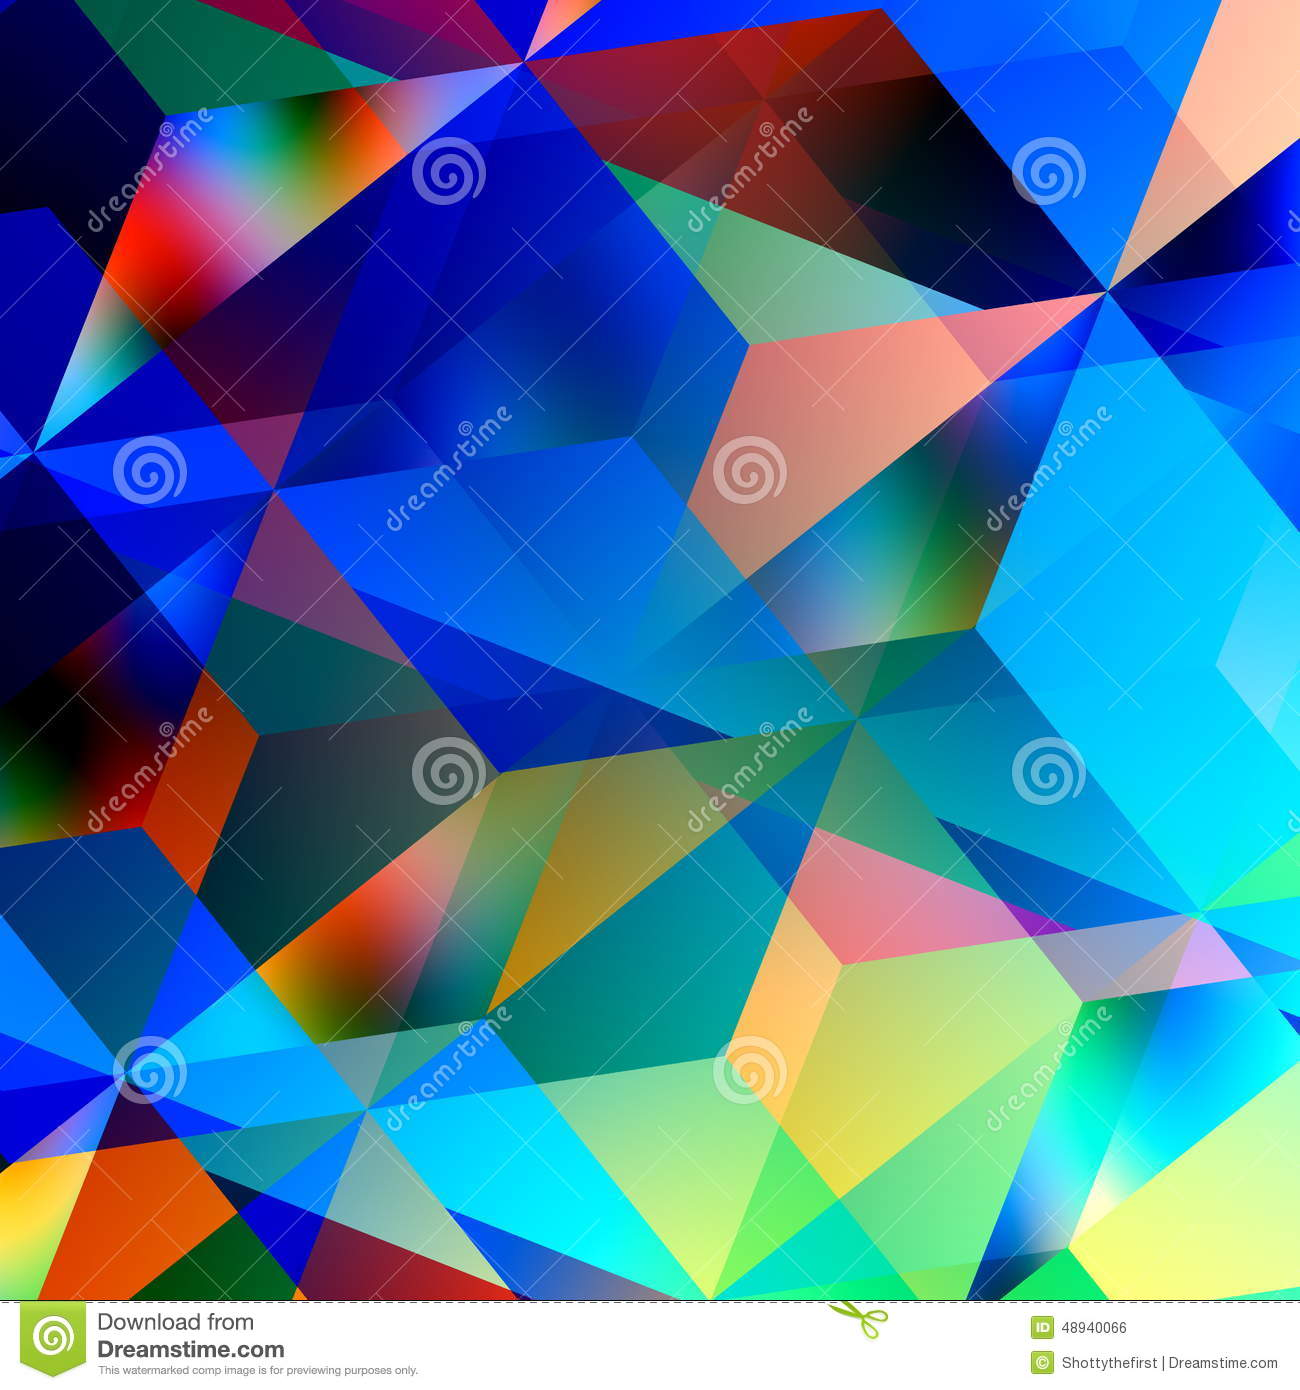 color geometric patterns graphic abstract triangle pattern background mosaic chaotic blue illustration